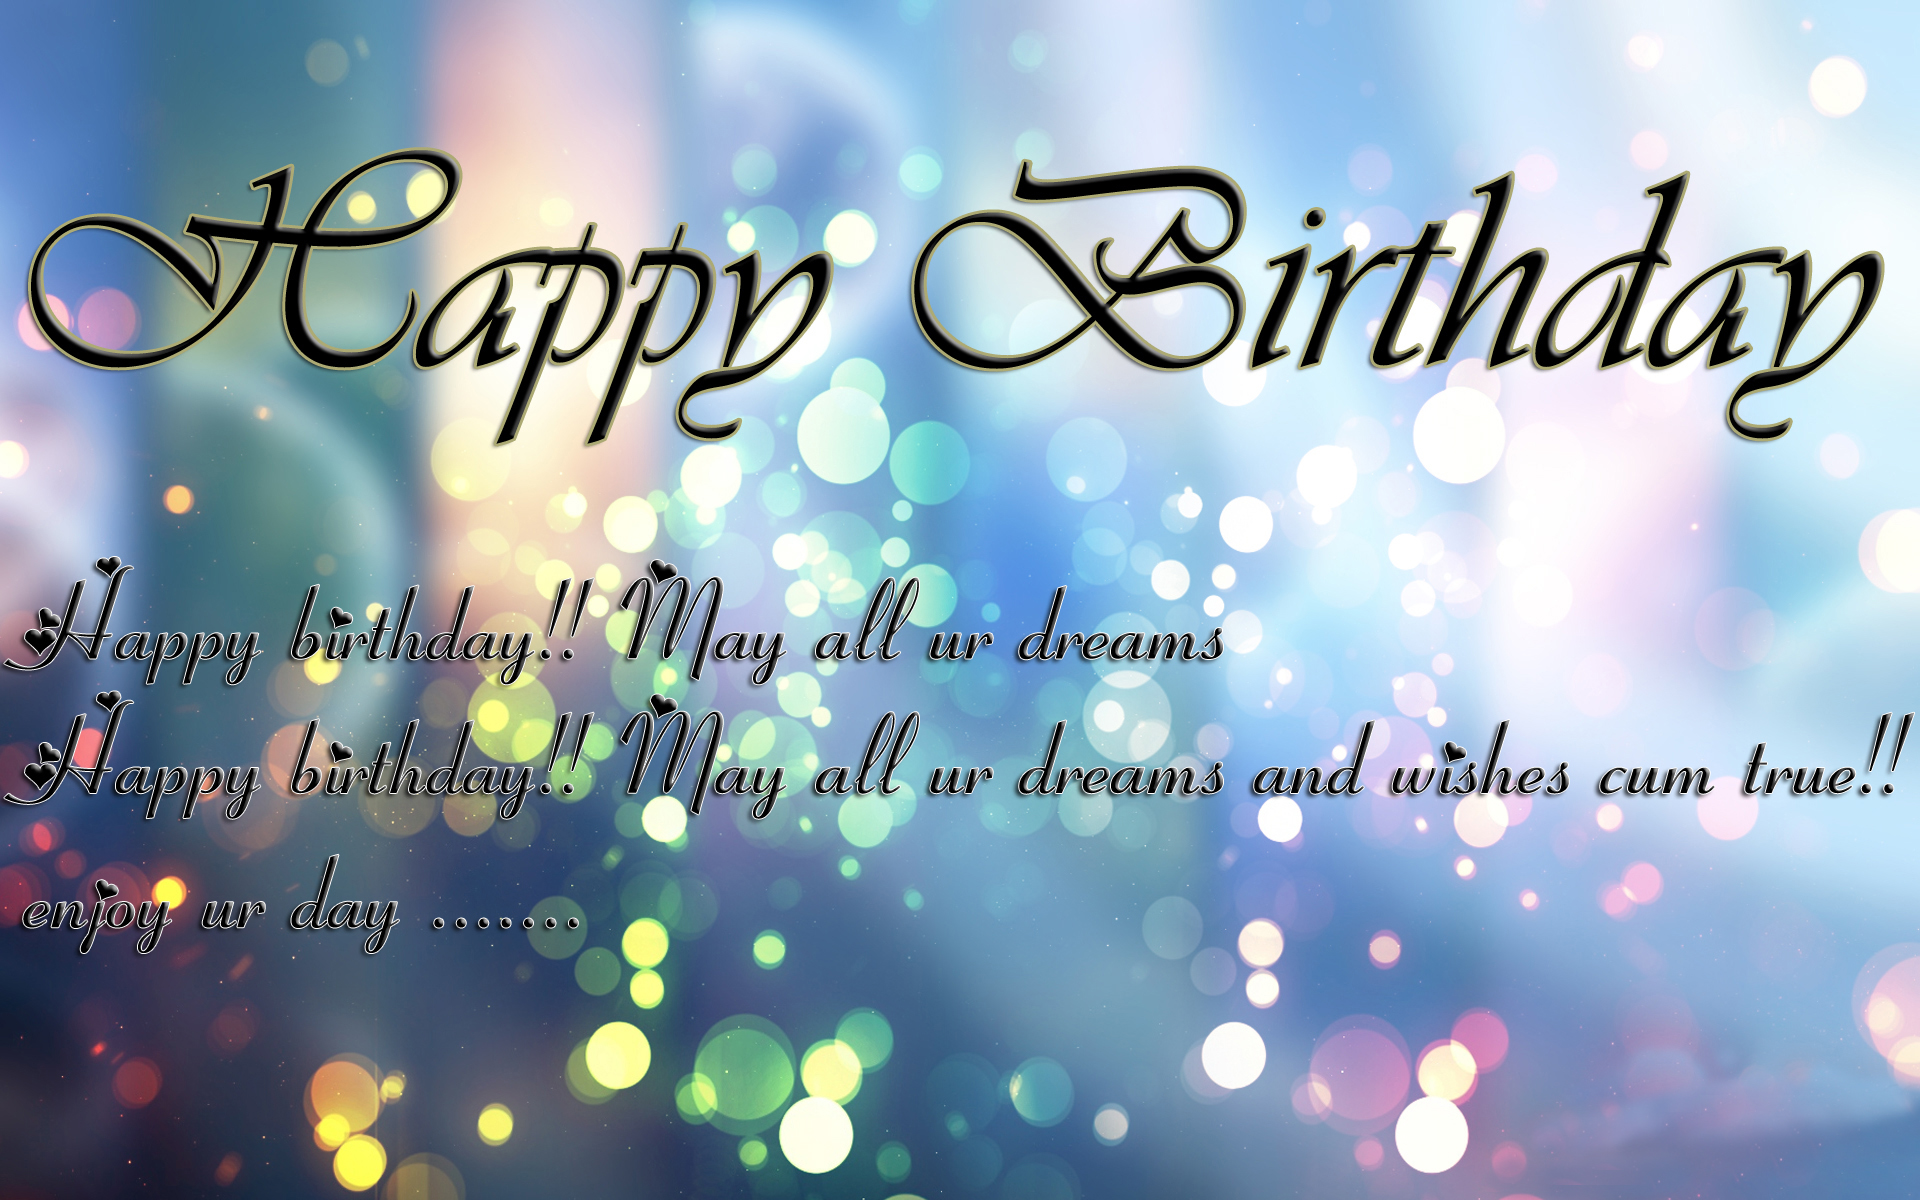 Top 120 happy birthday sms wishes quotes text messages happy birthday wishes m4hsunfo